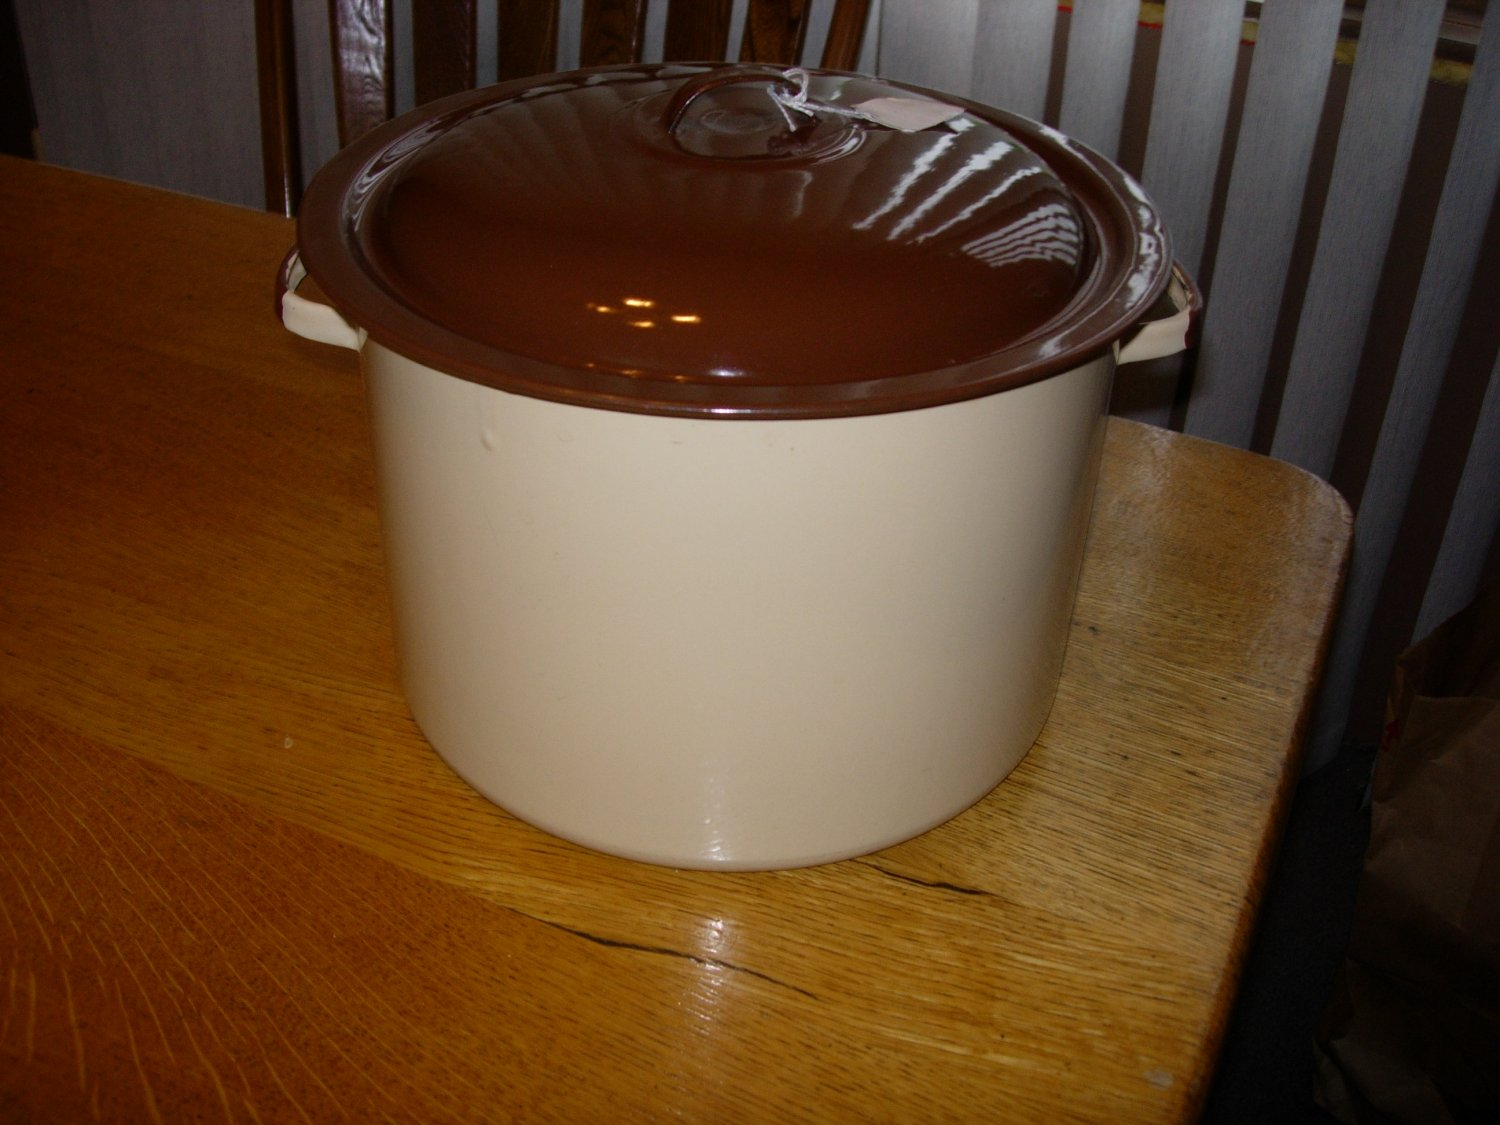 Vintage Tan Porcelain Enamelware Stock Pot with Brown Trim